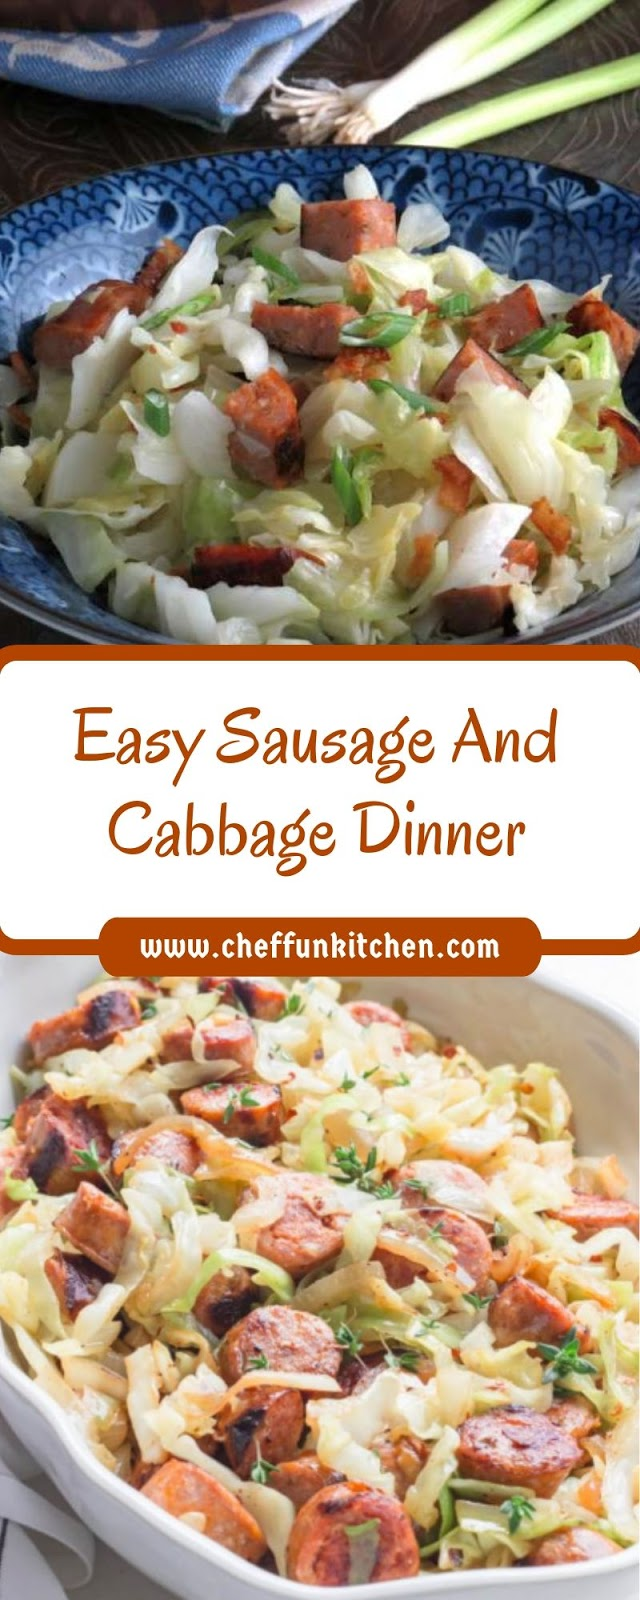 Easy Sausage And Cabbage Dinner